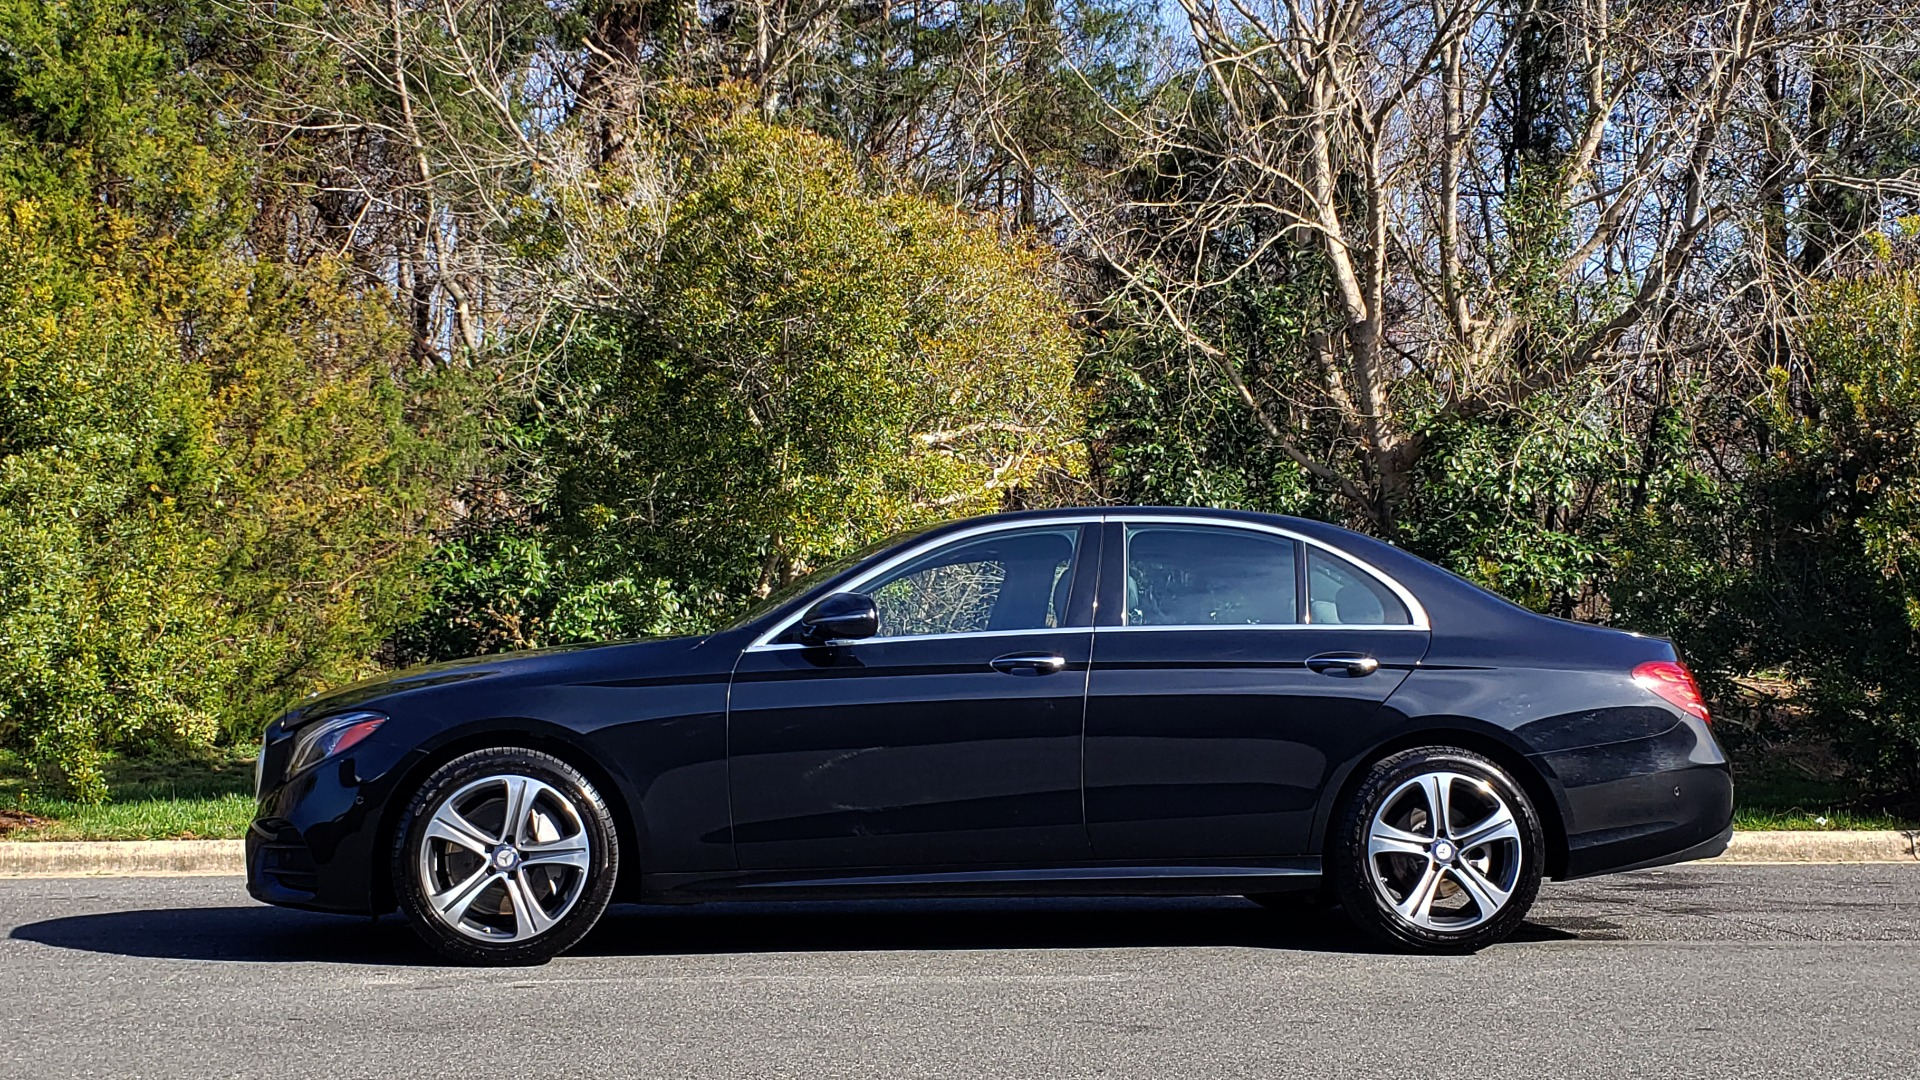 Used 2017 Mercedes-Benz E-CLASS E 300 PREMIUM / NAV / SUNROOF / BURMESTER / HTD STS / REARVIEW for sale $29,995 at Formula Imports in Charlotte NC 28227 2